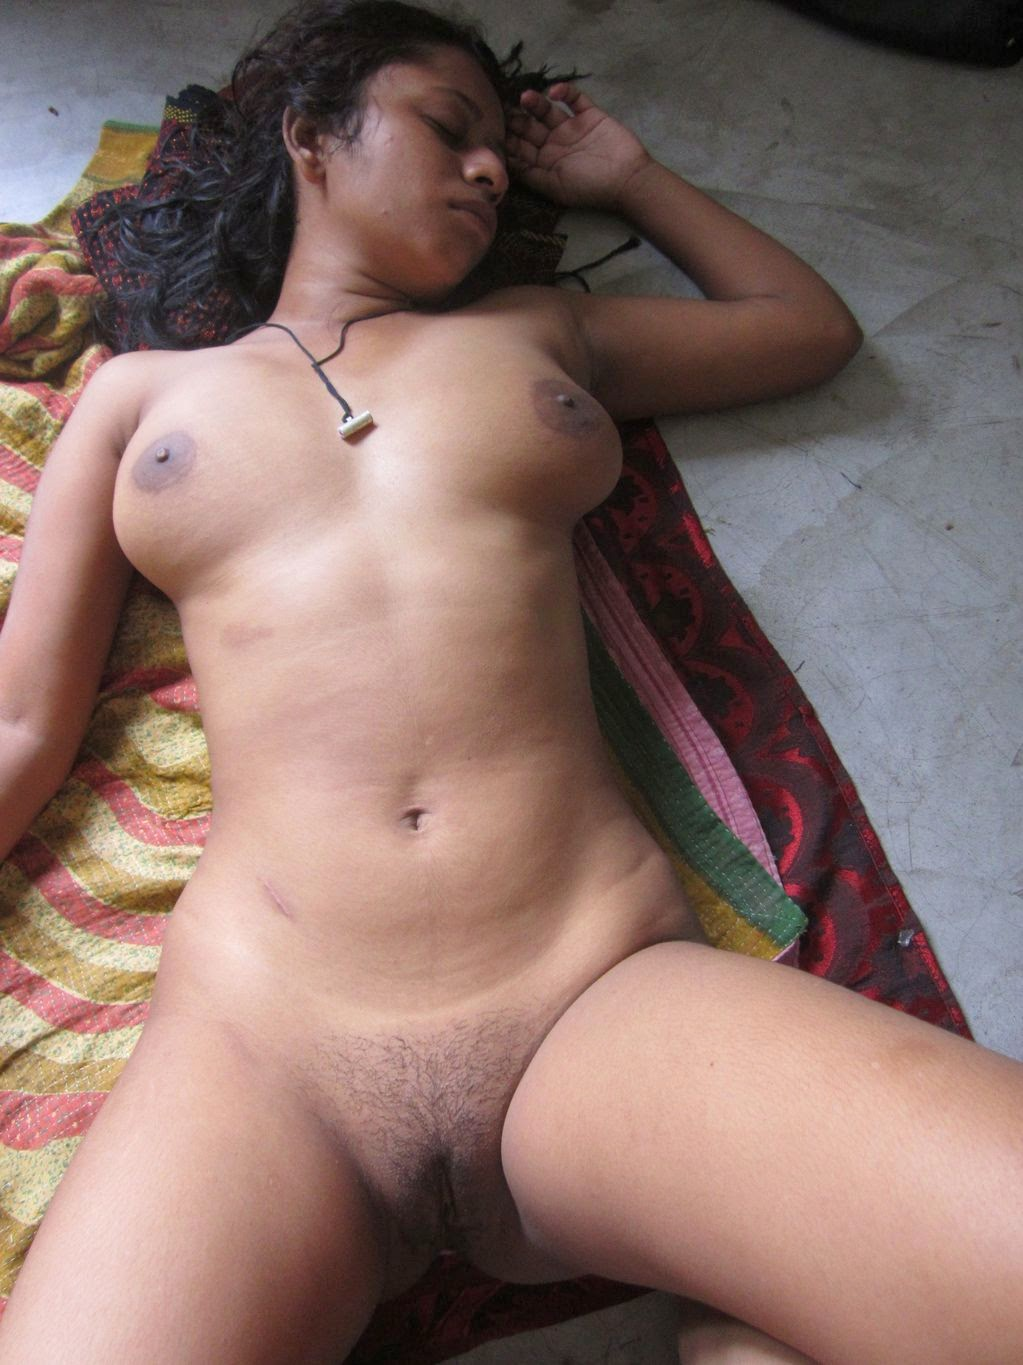 Remarkable, rather Indian girls having porn sex